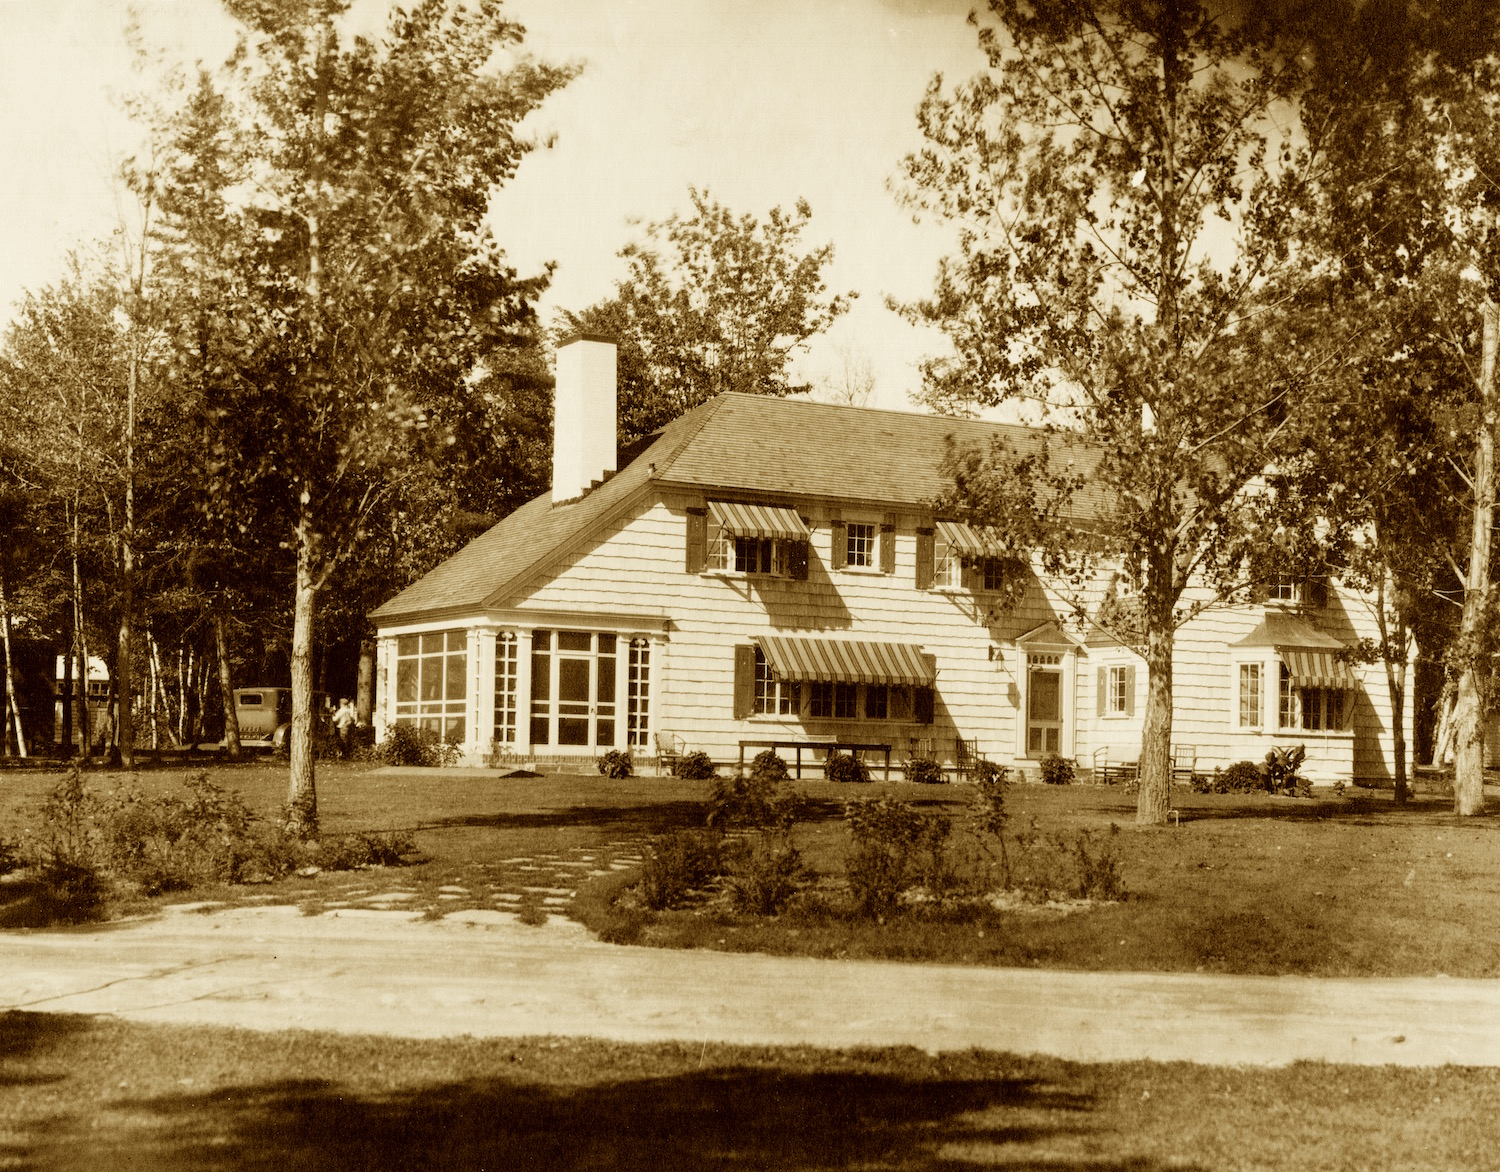 The Colony House at Lakewood